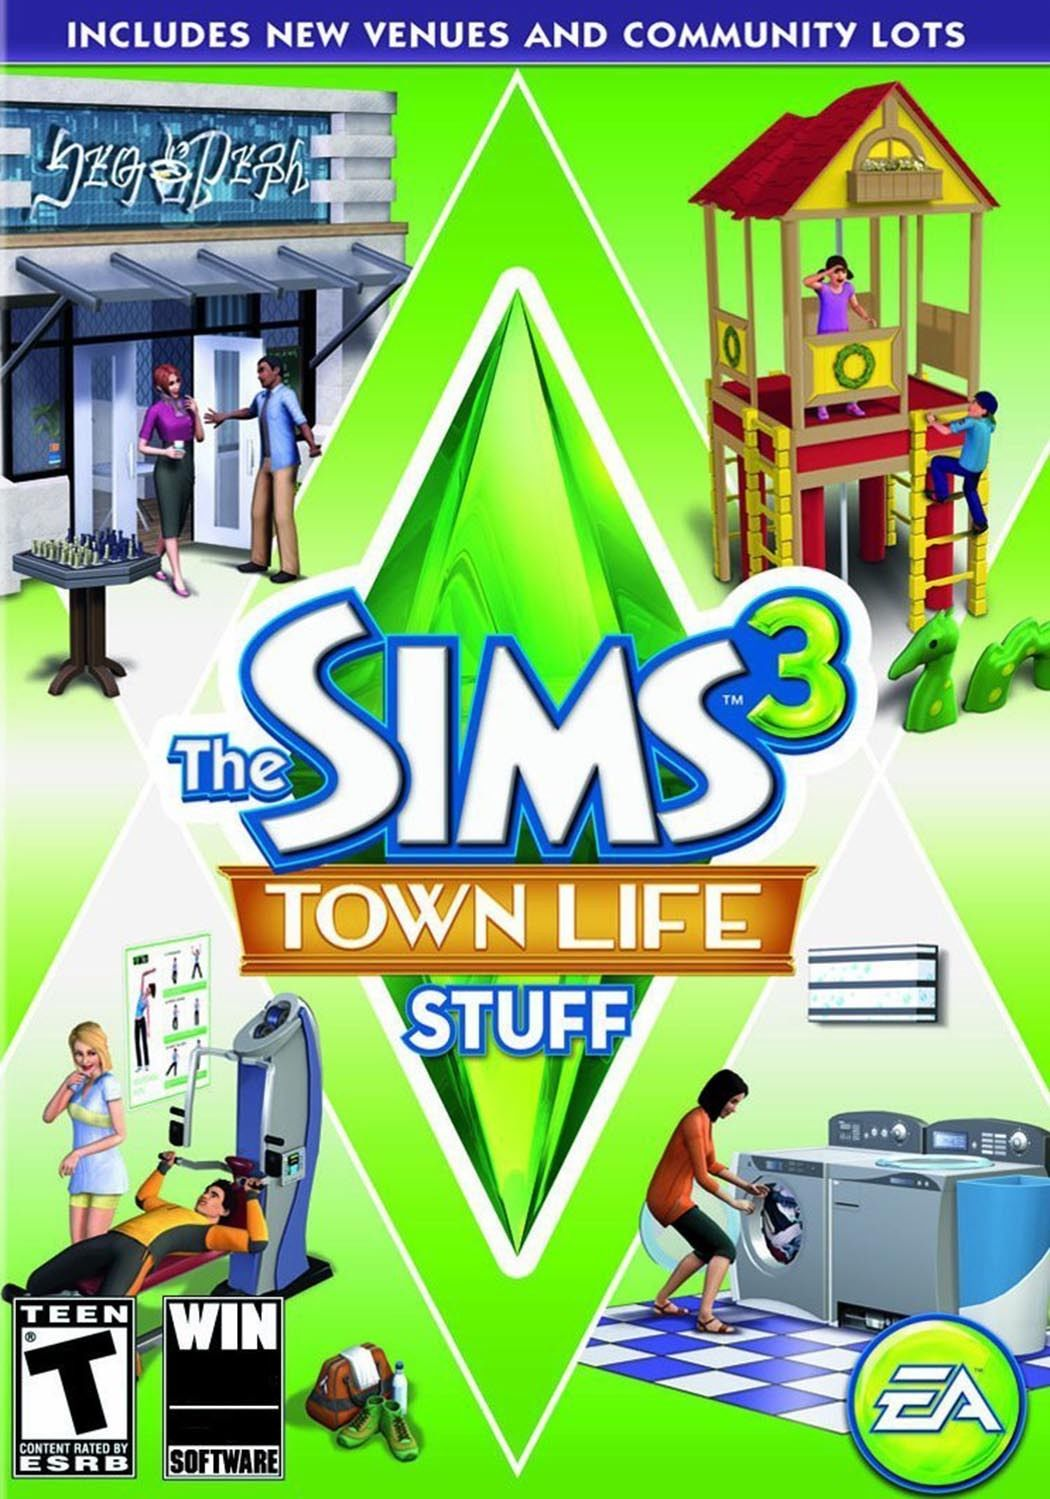 THE SIMS 3 TOWN LIFE STUFF EXPANSION PACK